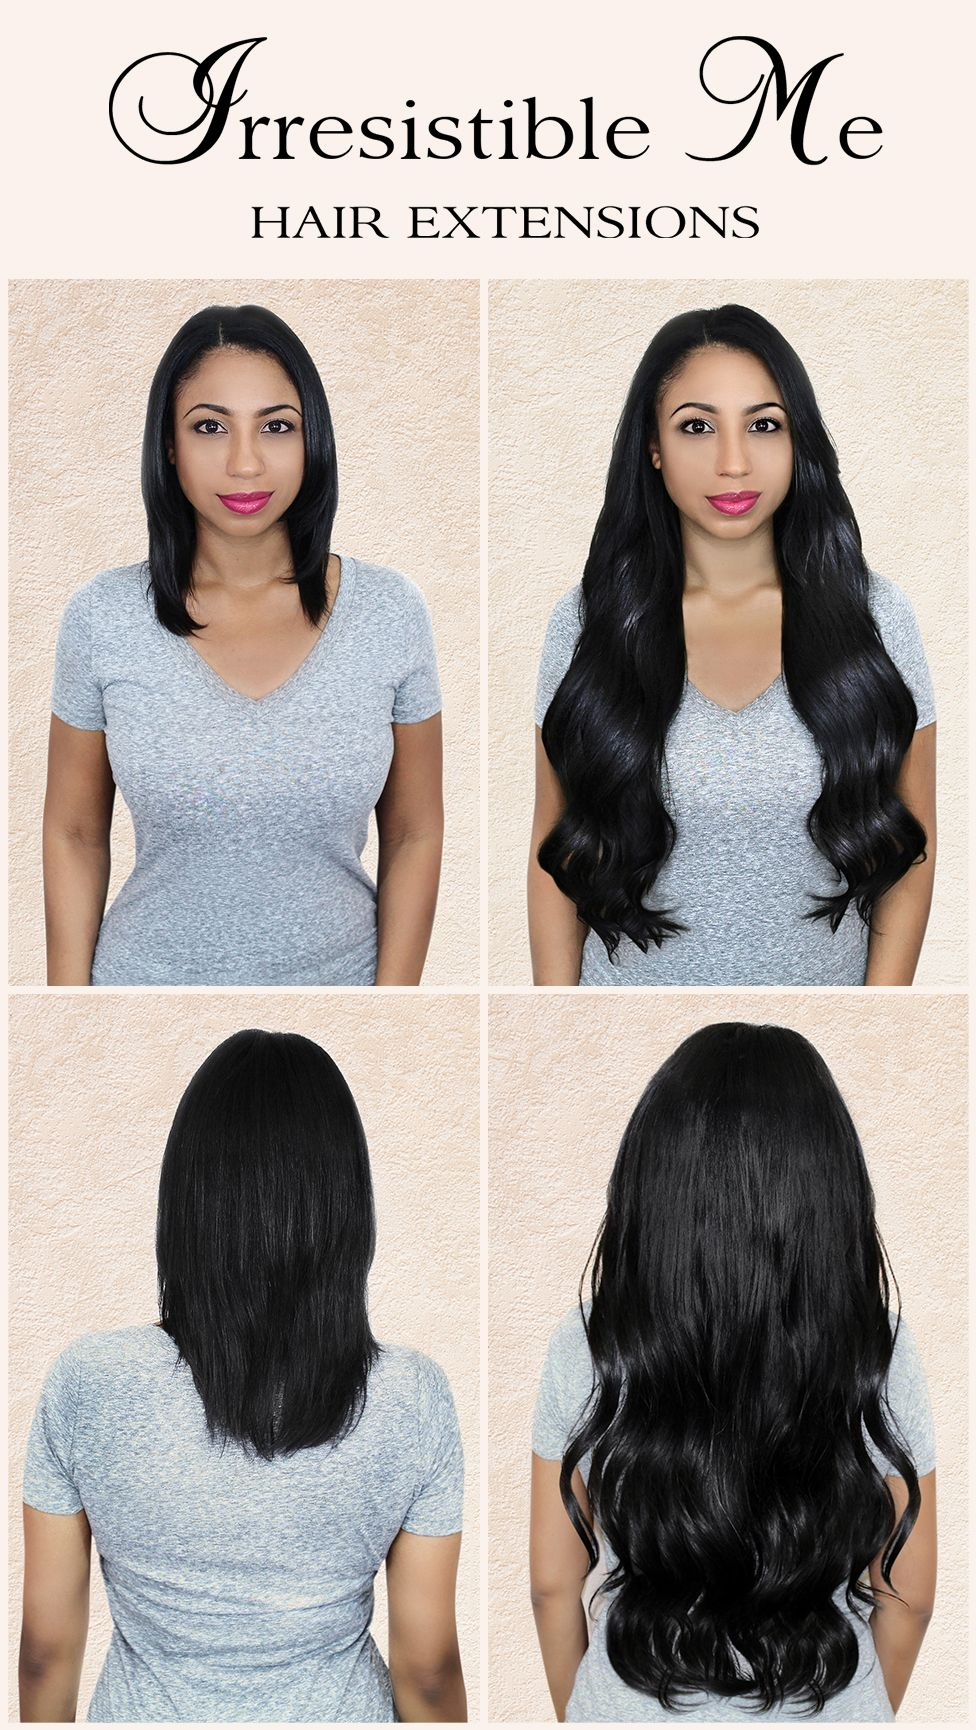 Make A Dramatic Hairstyle Change With Irresistible Me 100 Human Remy Clip In Ha Hair Extensions Online Irresistible Me Hair Extensions Clip In Hair Extensions